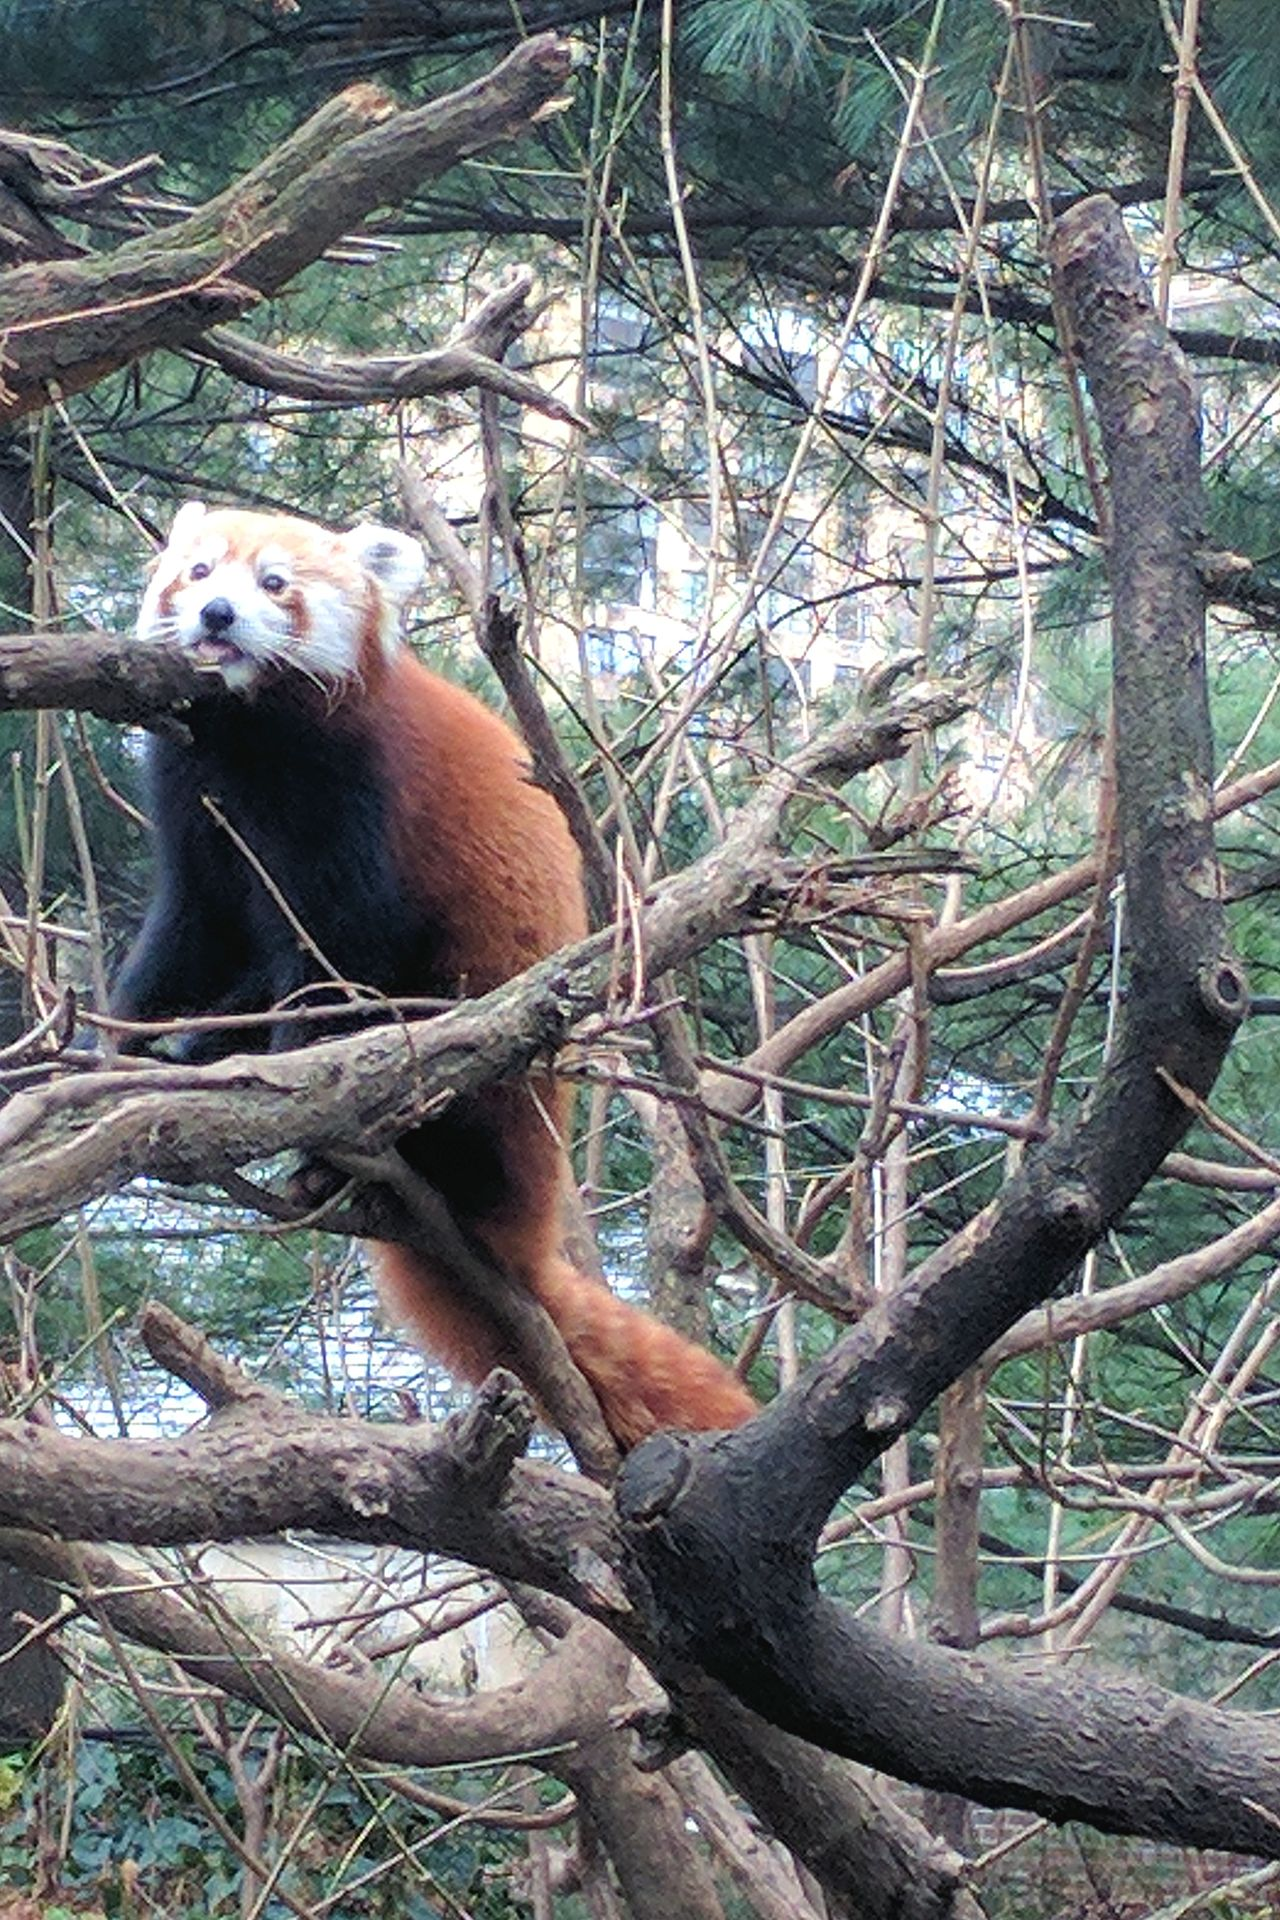 Animal Themes Sitting Animals In The Wild One Animal Tree Mammal Branch Nature Outdoors Day No People Panda Red Panda Tongue Tongue Out